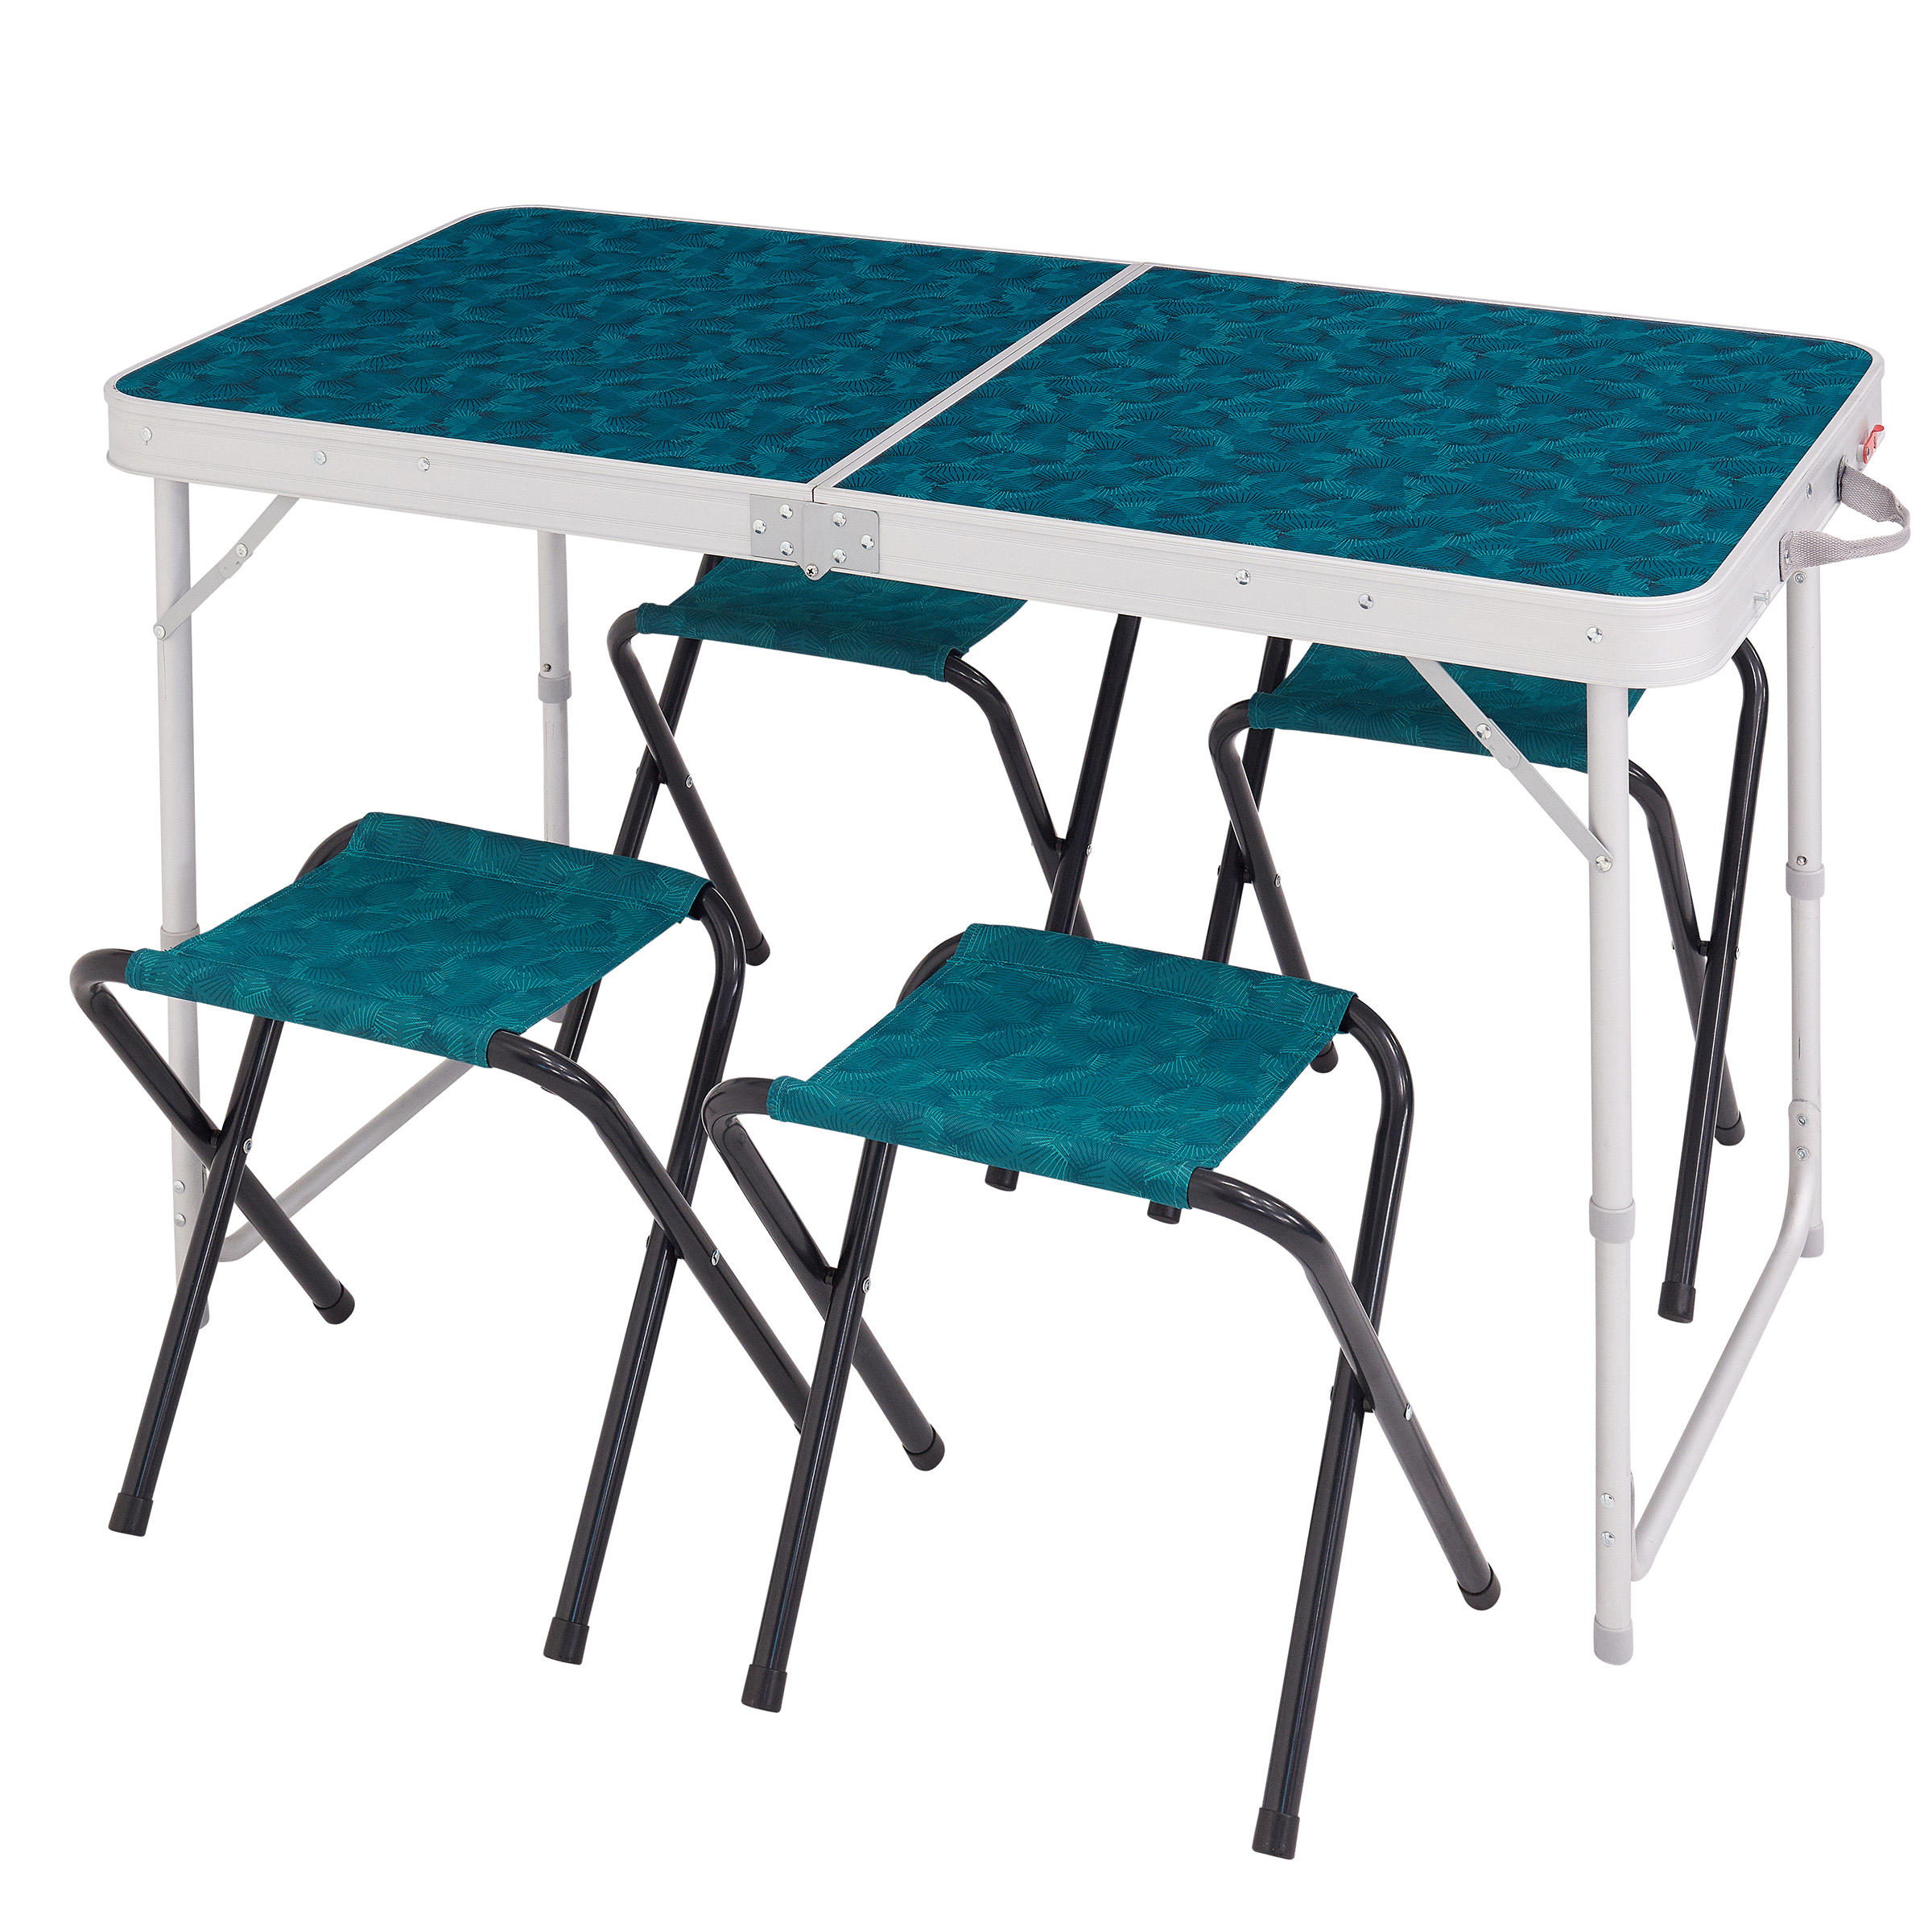 FOLDING CAMPING TABLE WITH 4 STOOLS